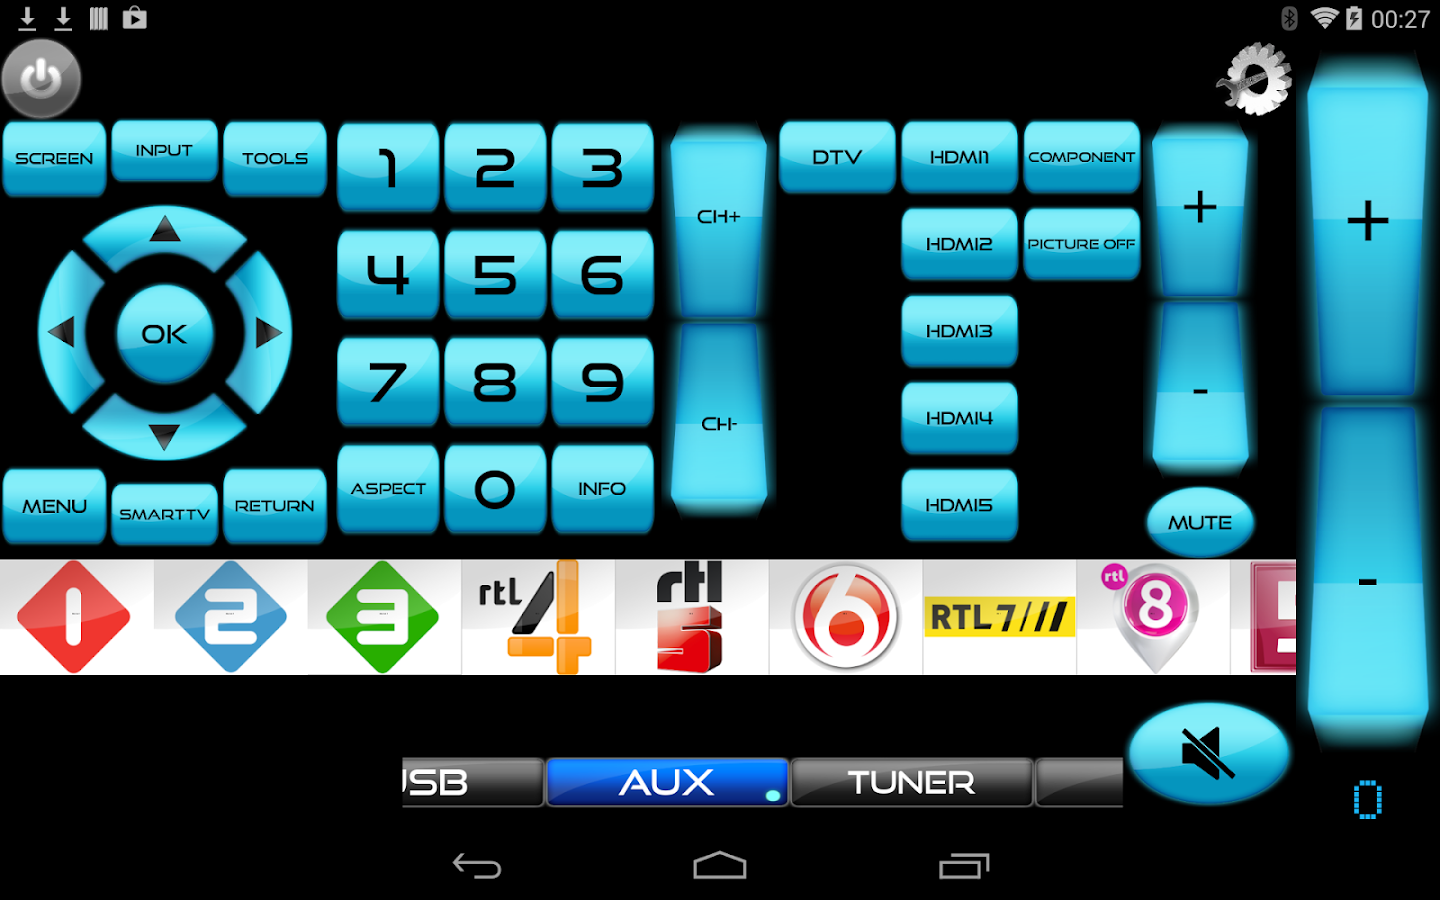 remote for panasonic tv bd avr android apps on google play. Black Bedroom Furniture Sets. Home Design Ideas